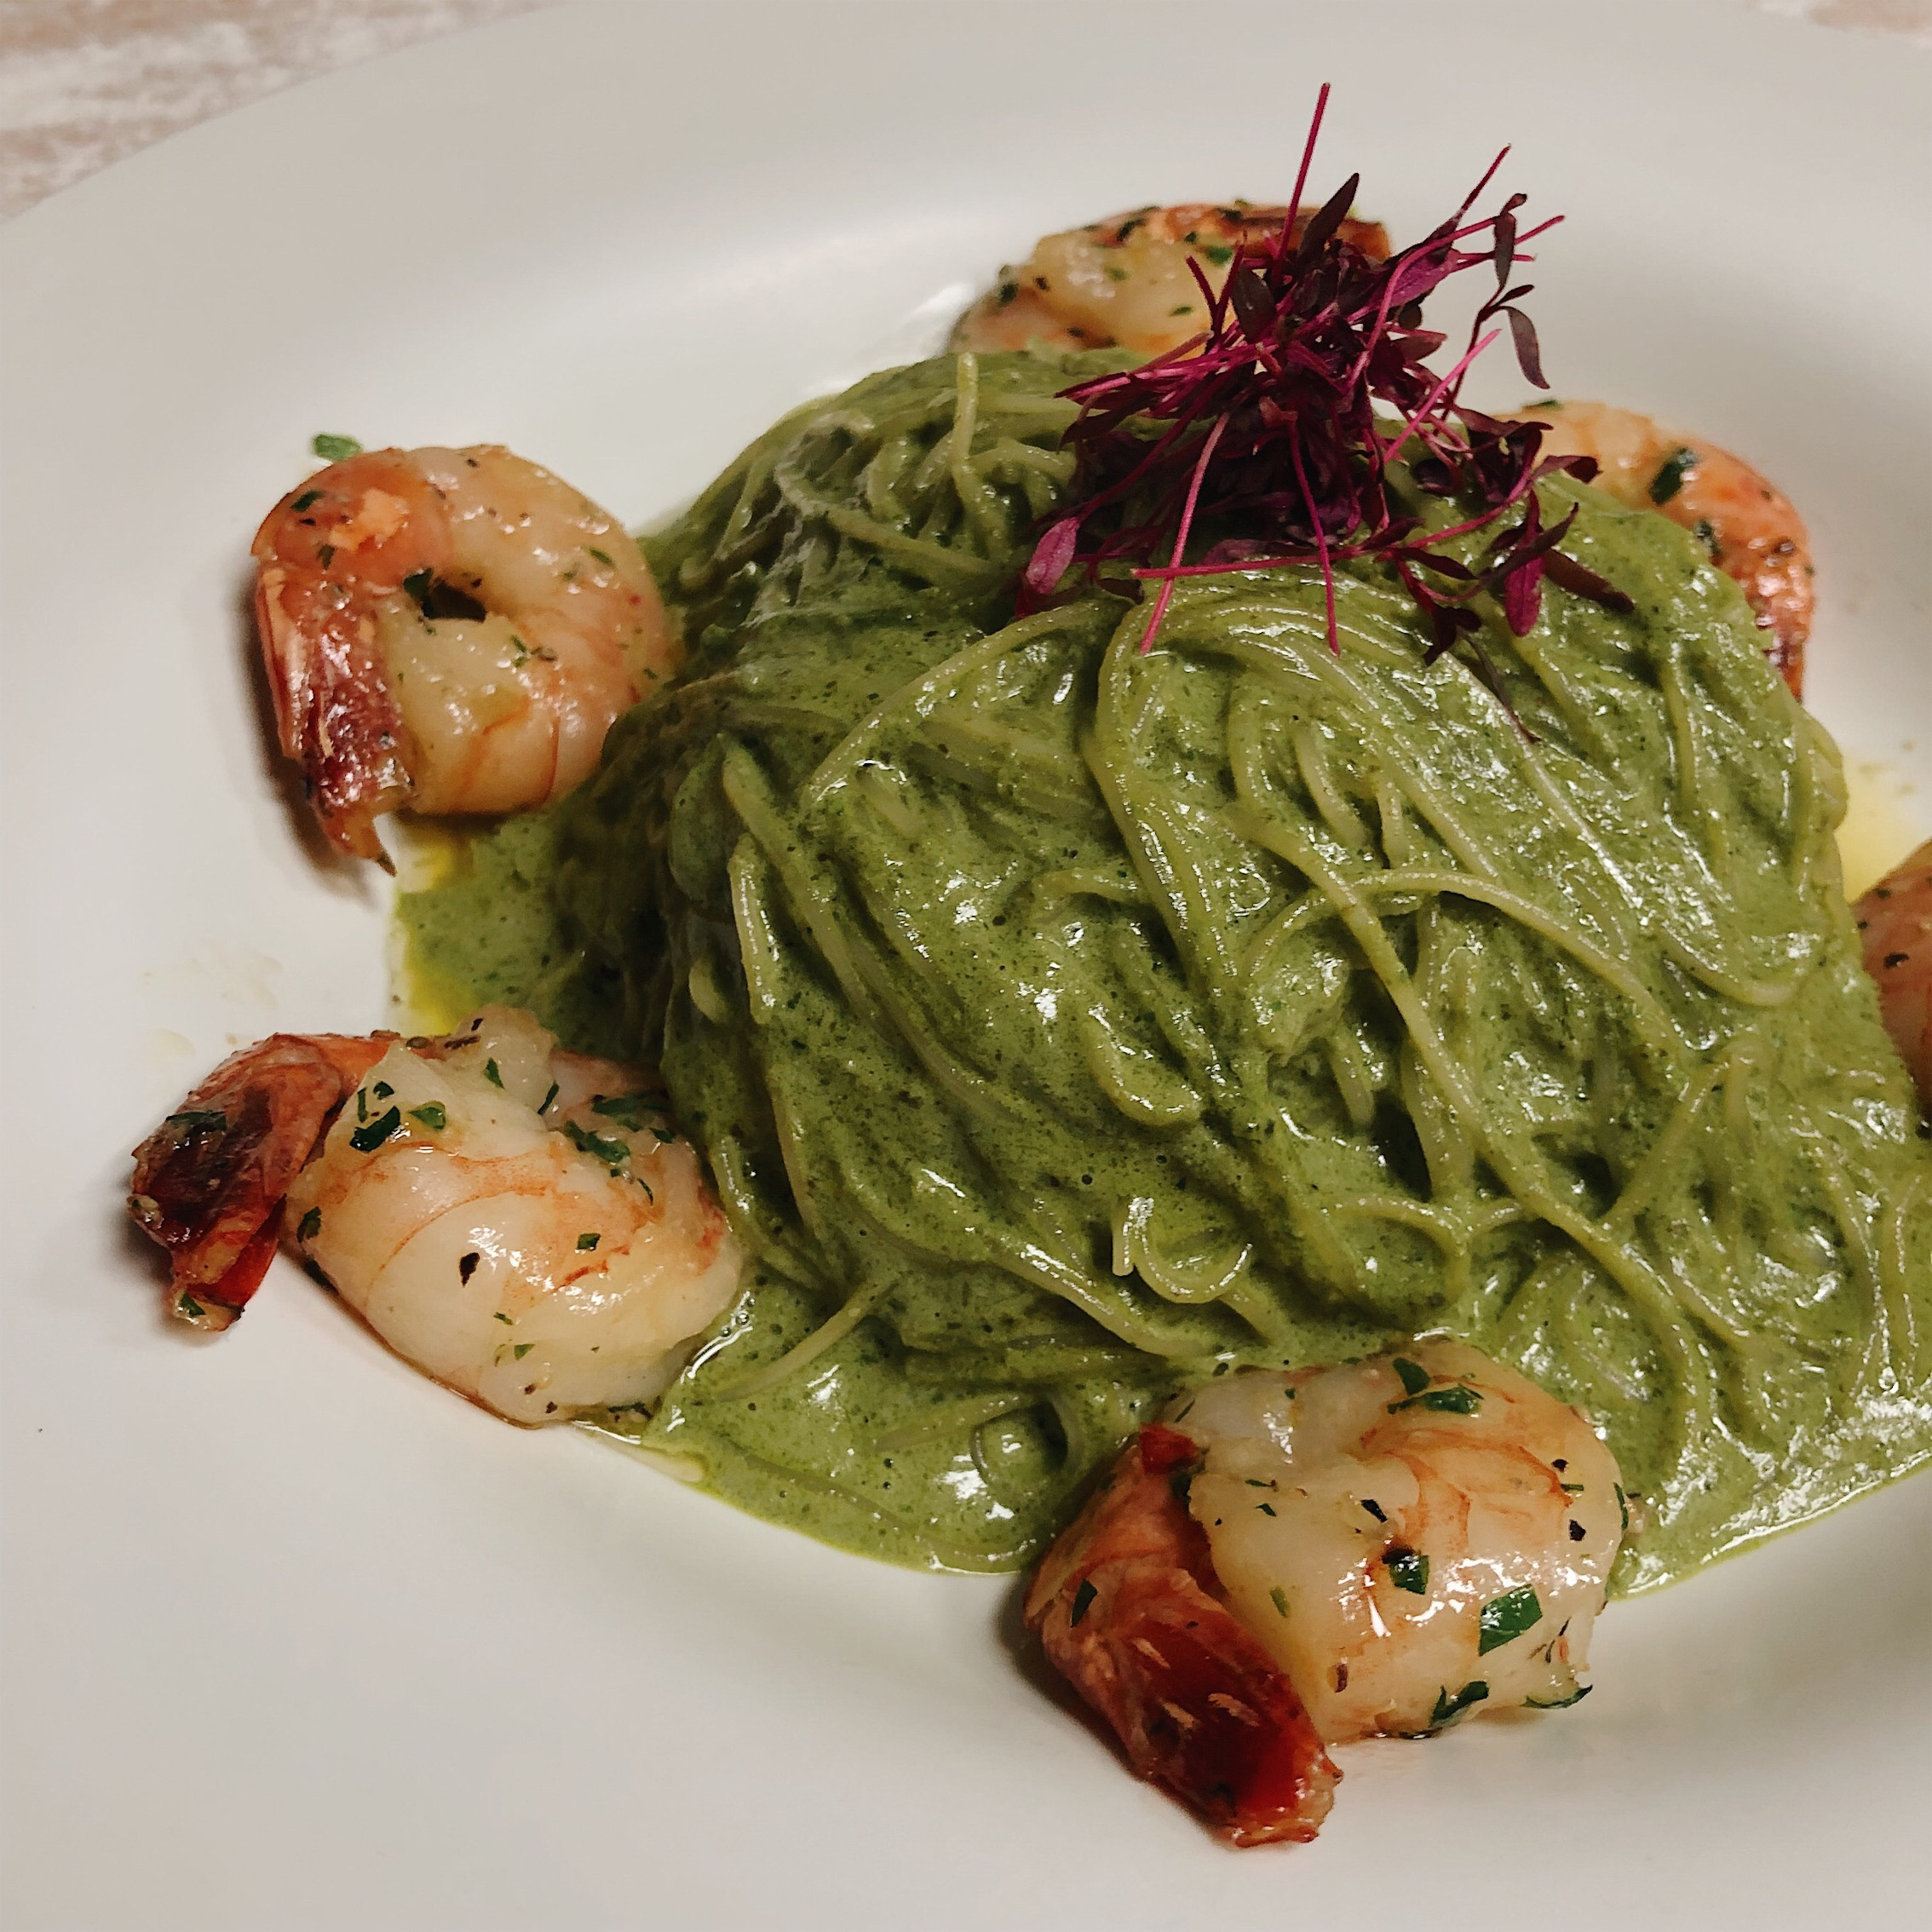 Capellini with tiger shrimp and pesto sauce